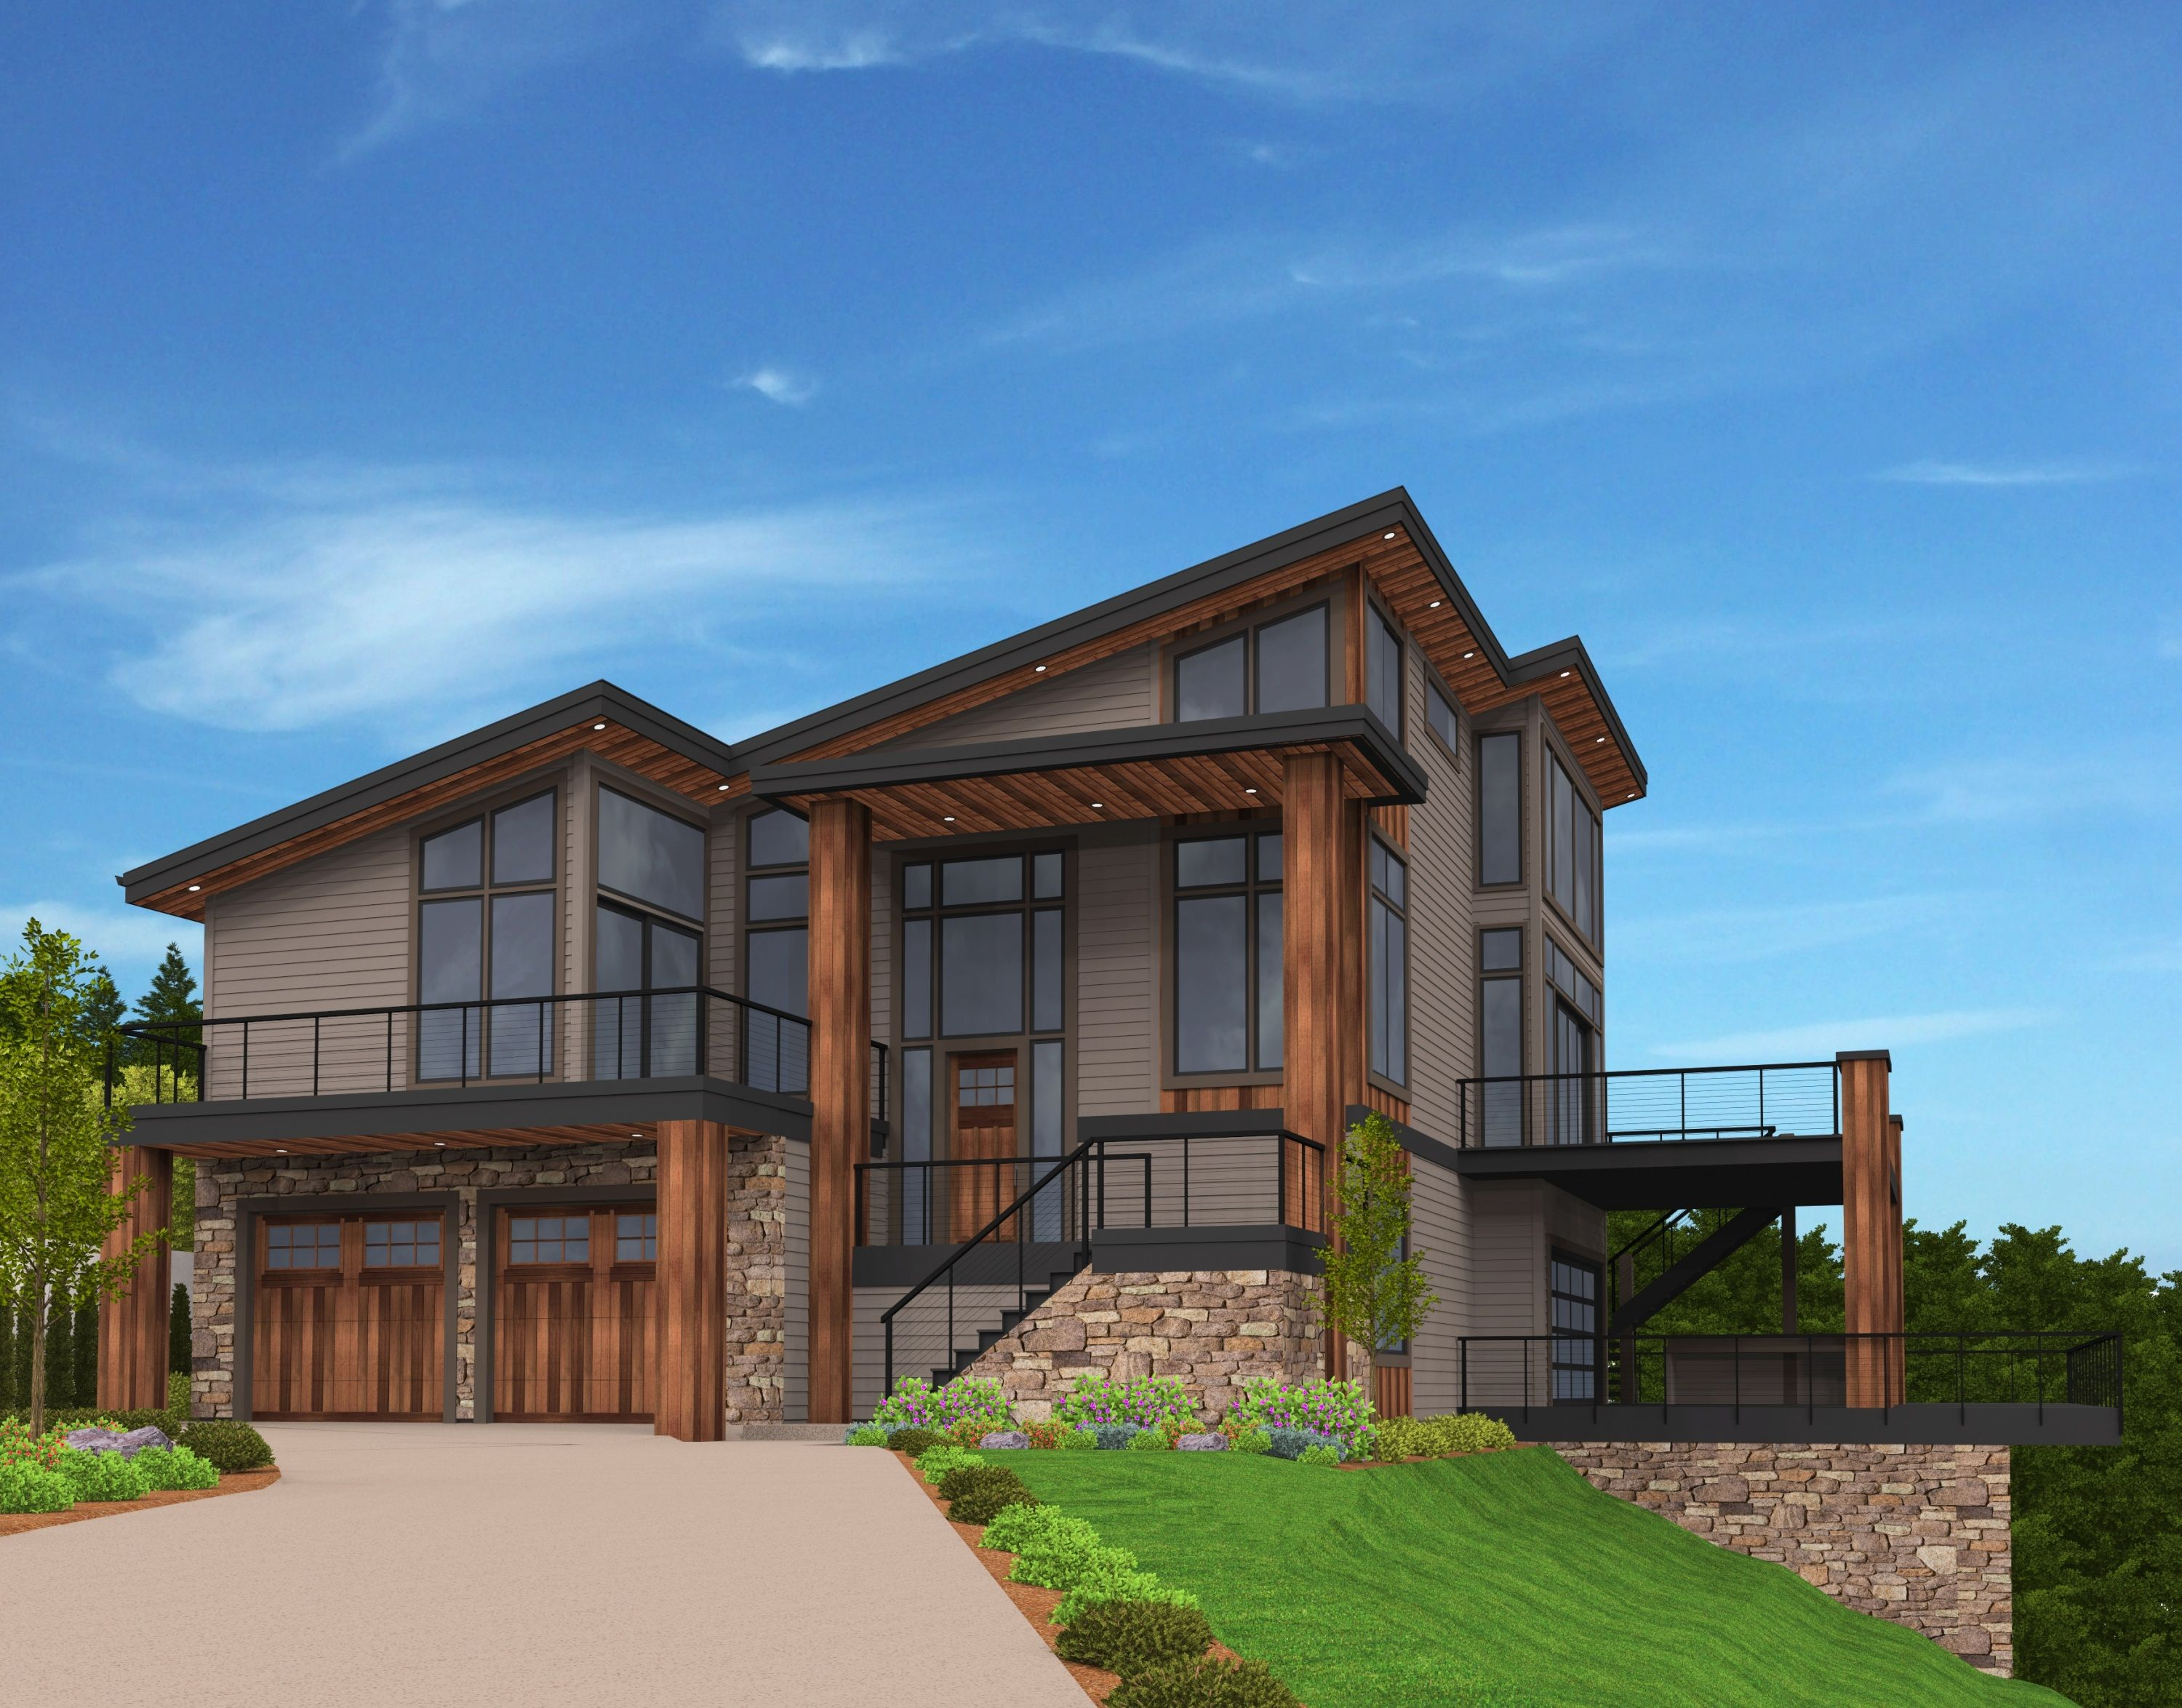 Oriented Perfectly For A View Lot This Shed Roof House Plan Will Leave You Breathless The M House Exterior House Designs Exterior Contemporary House Design